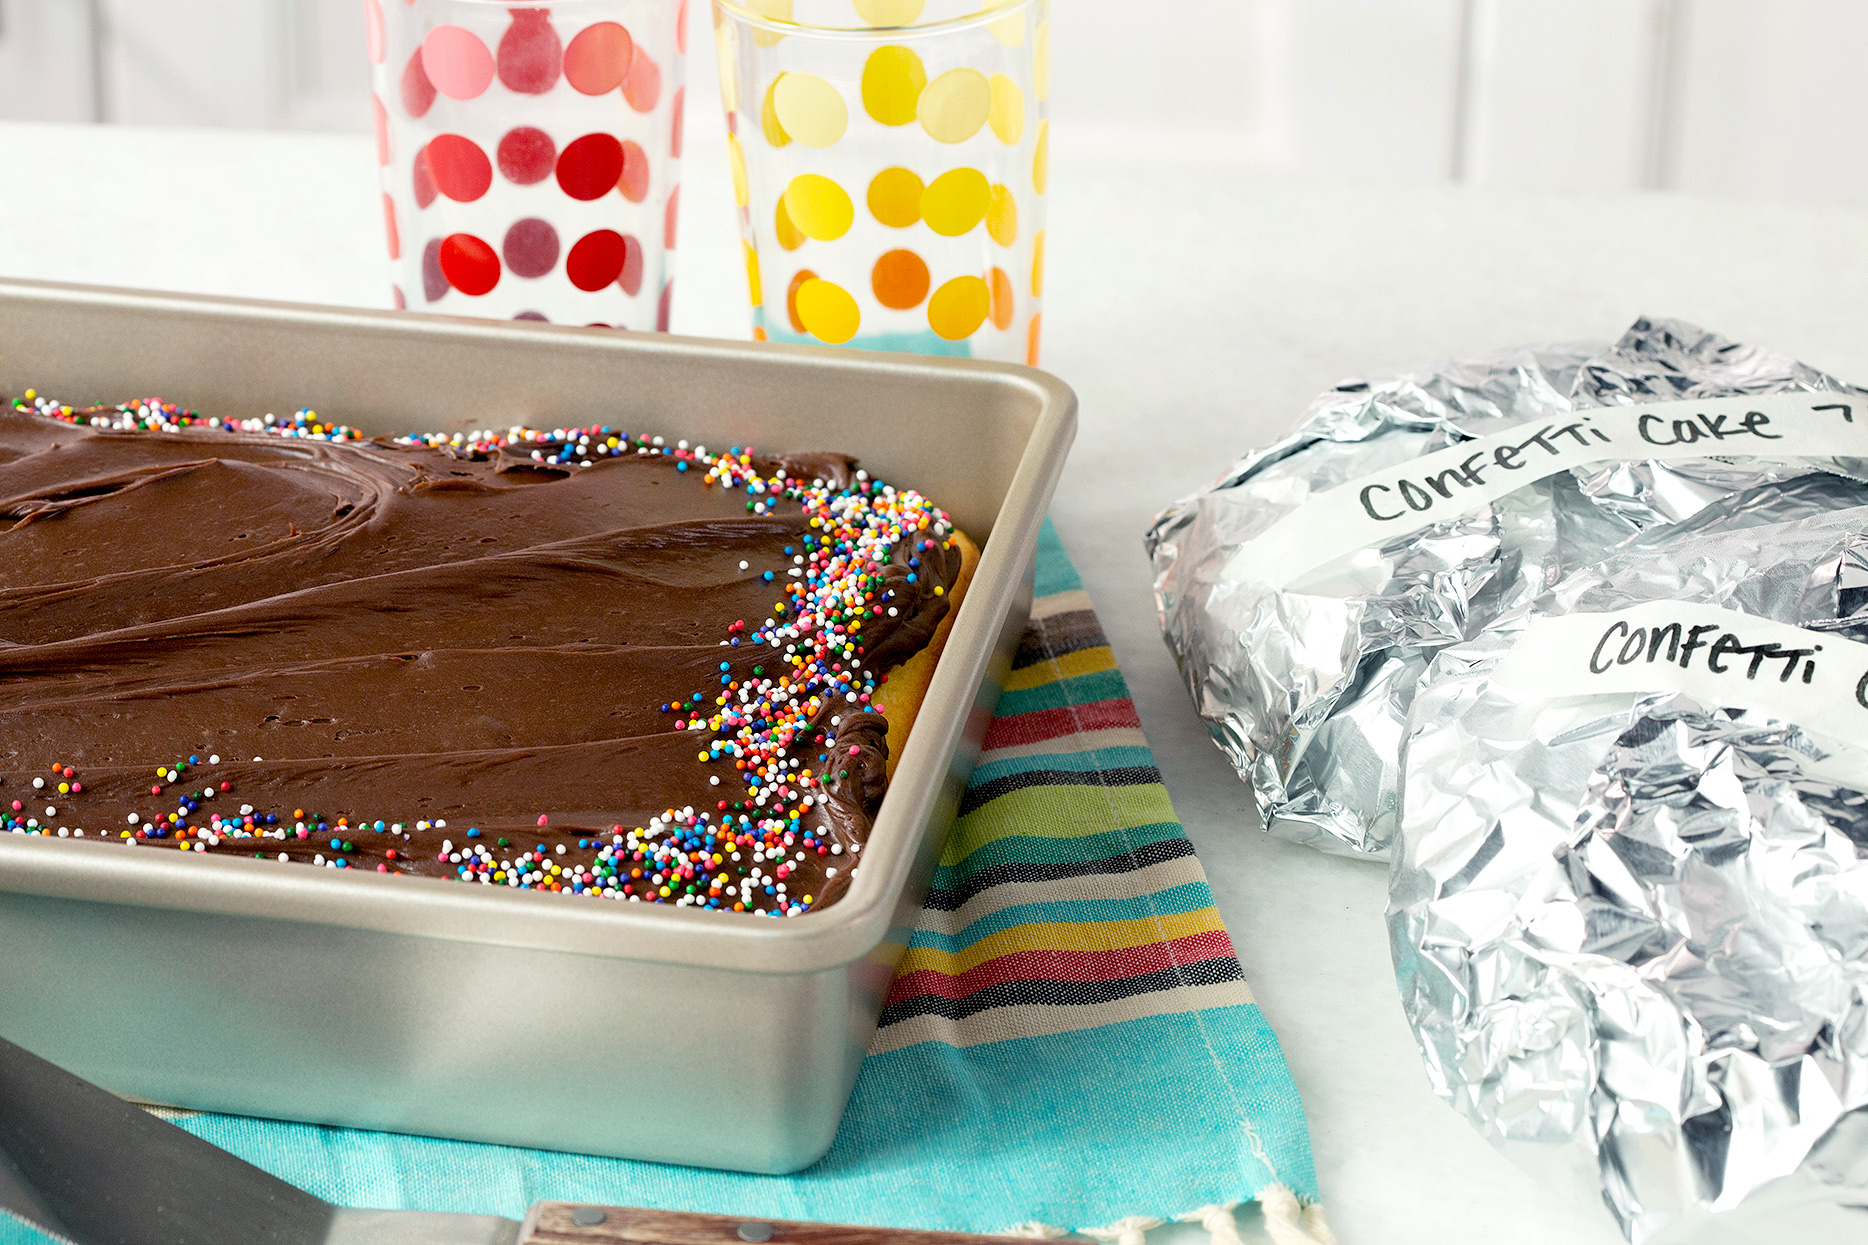 frosted and frozen cake wrapped in foil